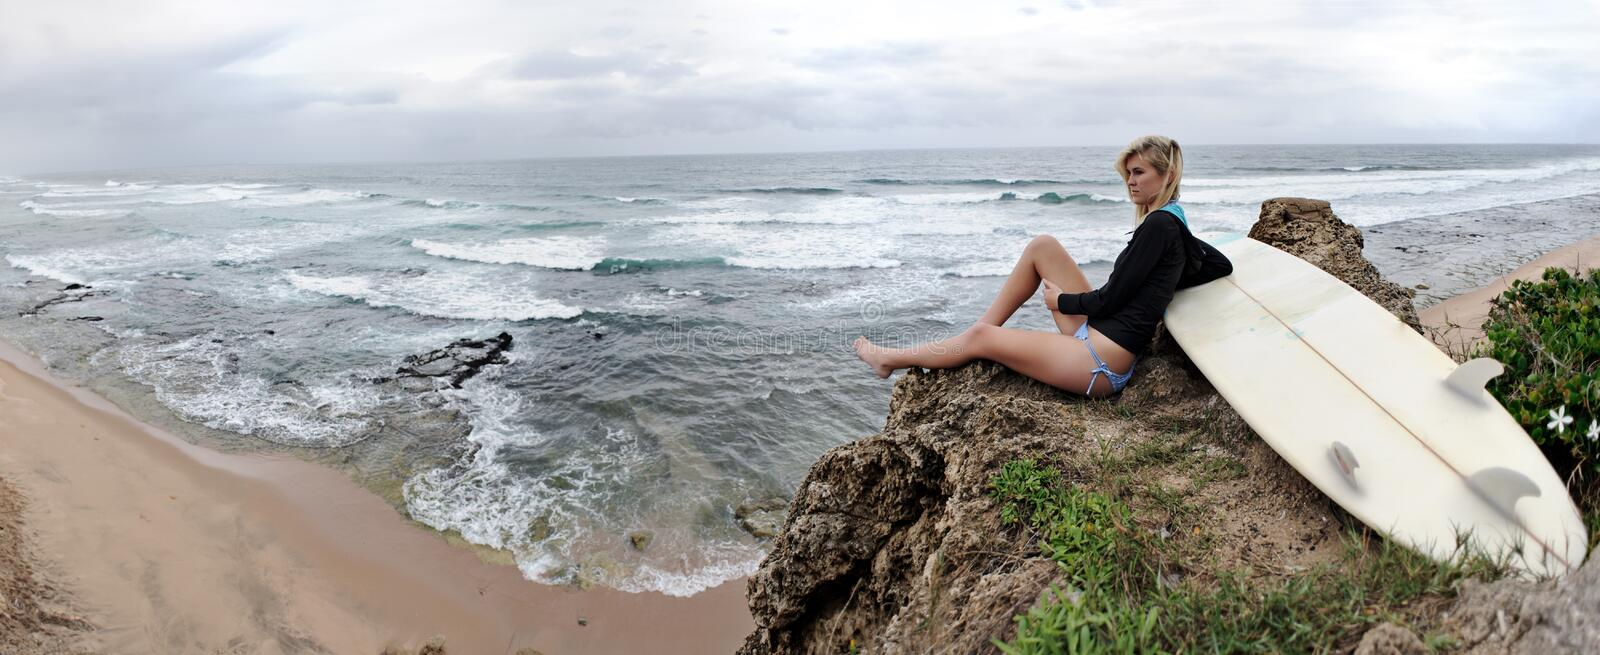 Surfer Girl Lifestyle Panoramic Royalty Free Stock Images